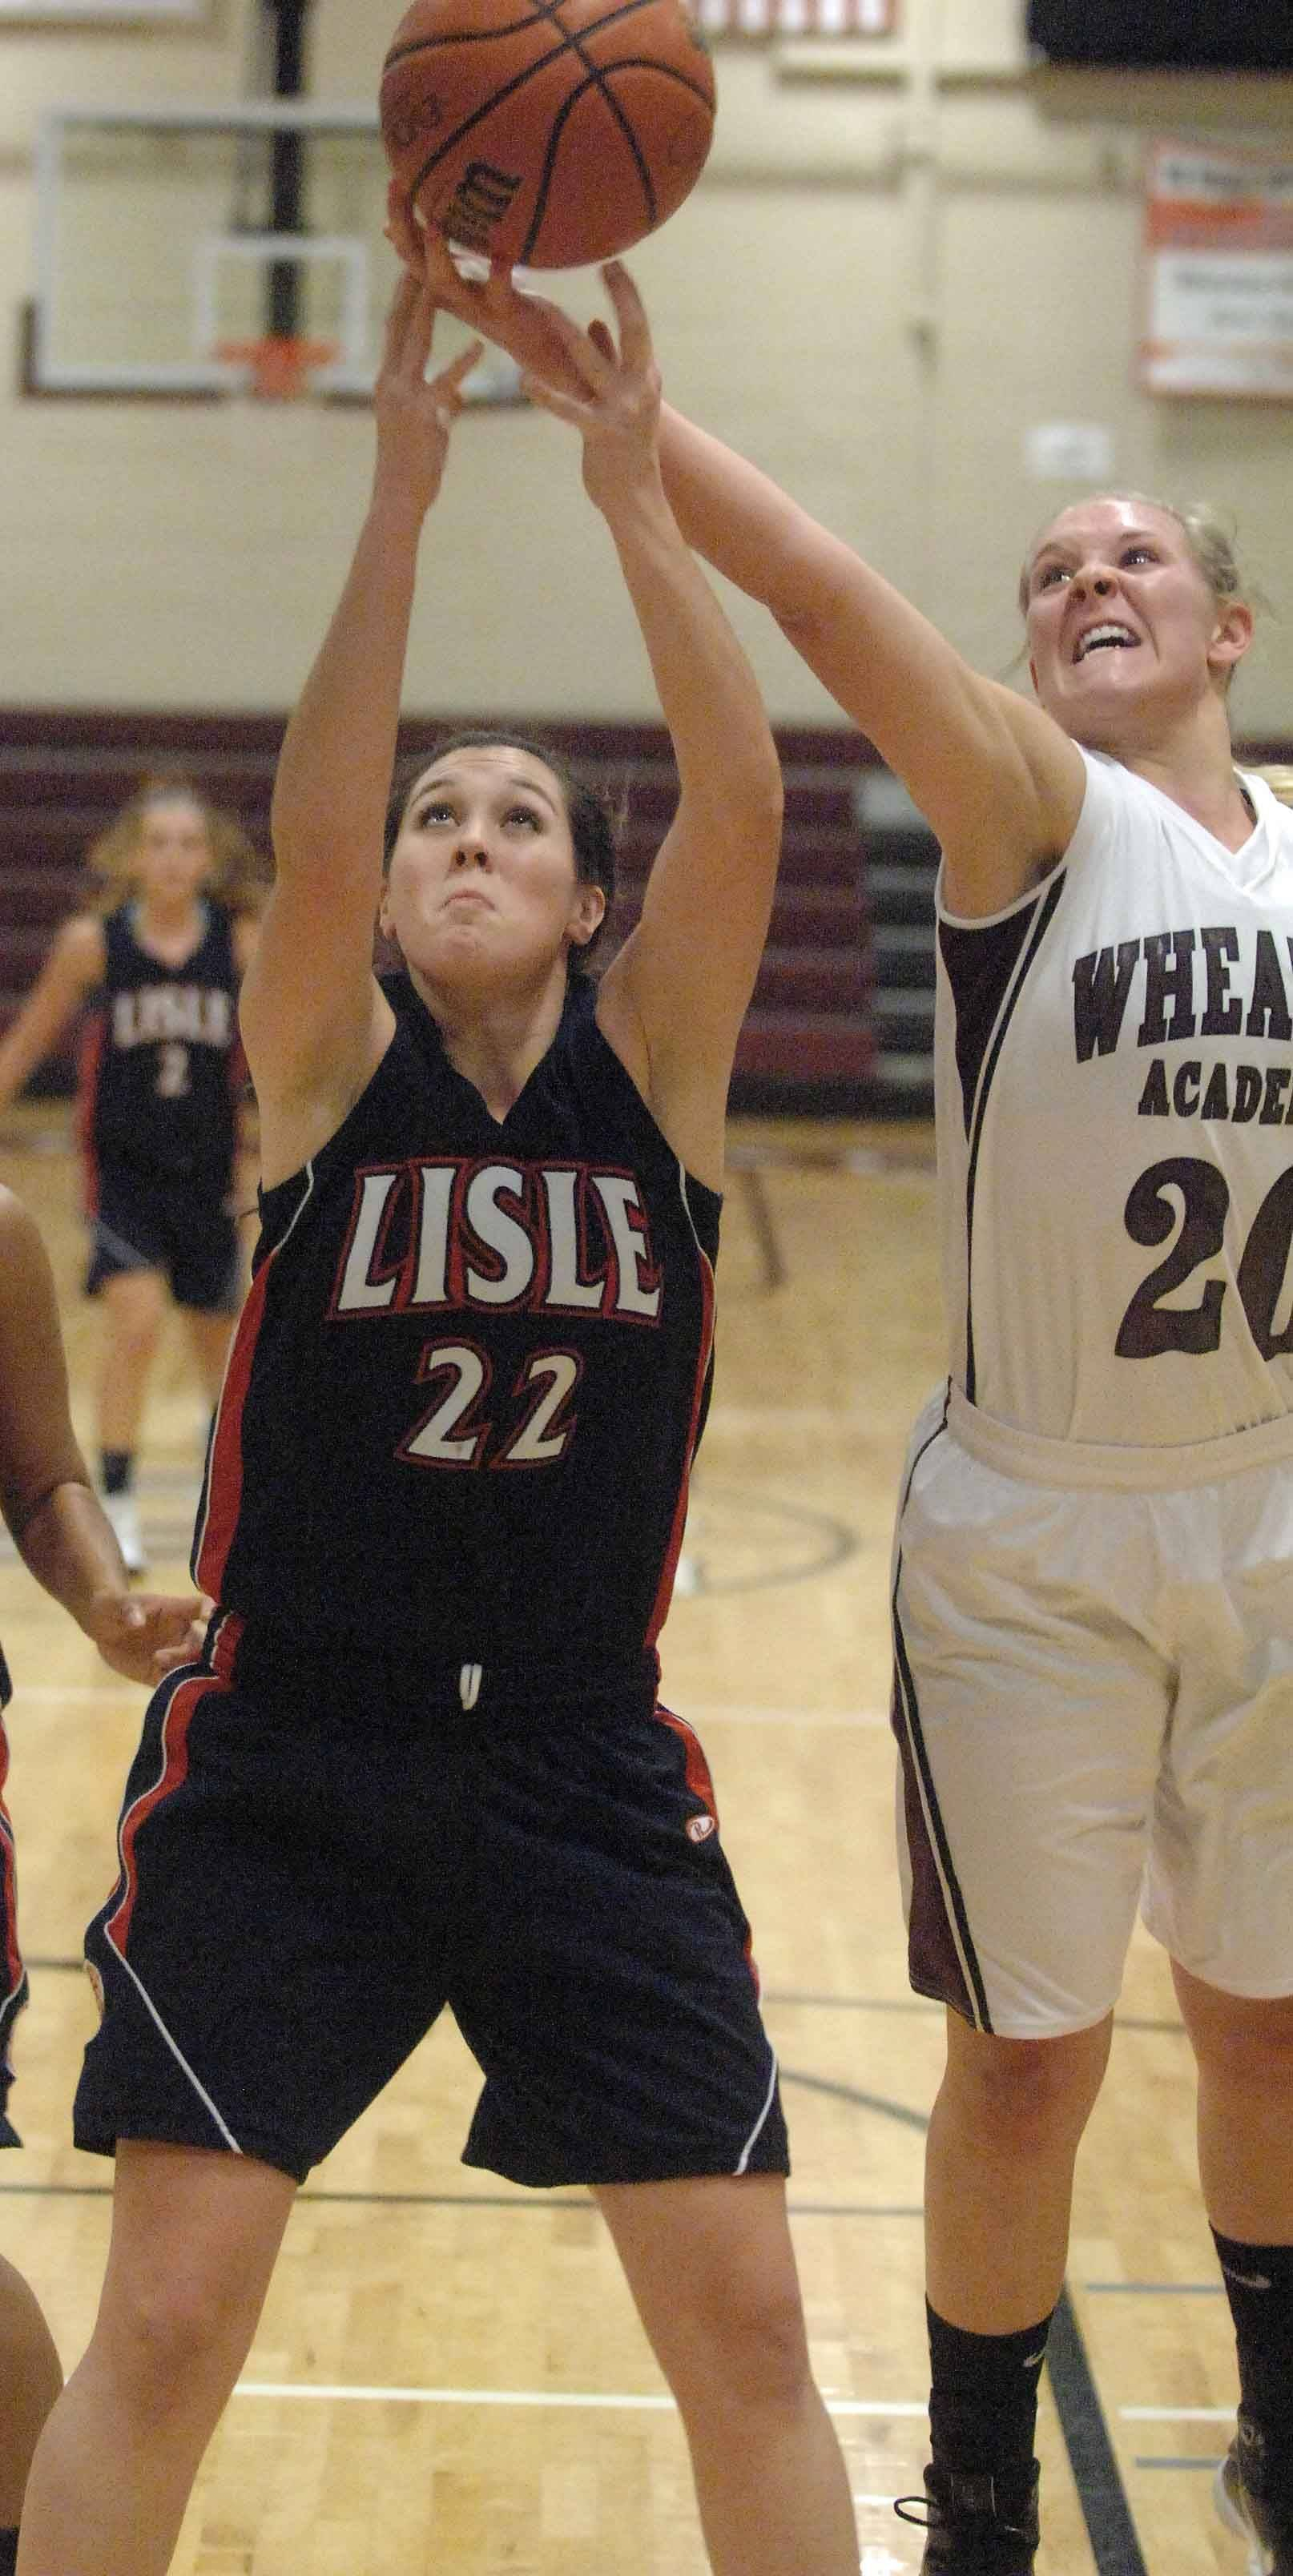 Shelby Kretman of Lisle, left, and Sarah Drury of Wheaton Academy, reach for a rebound Tuesday.